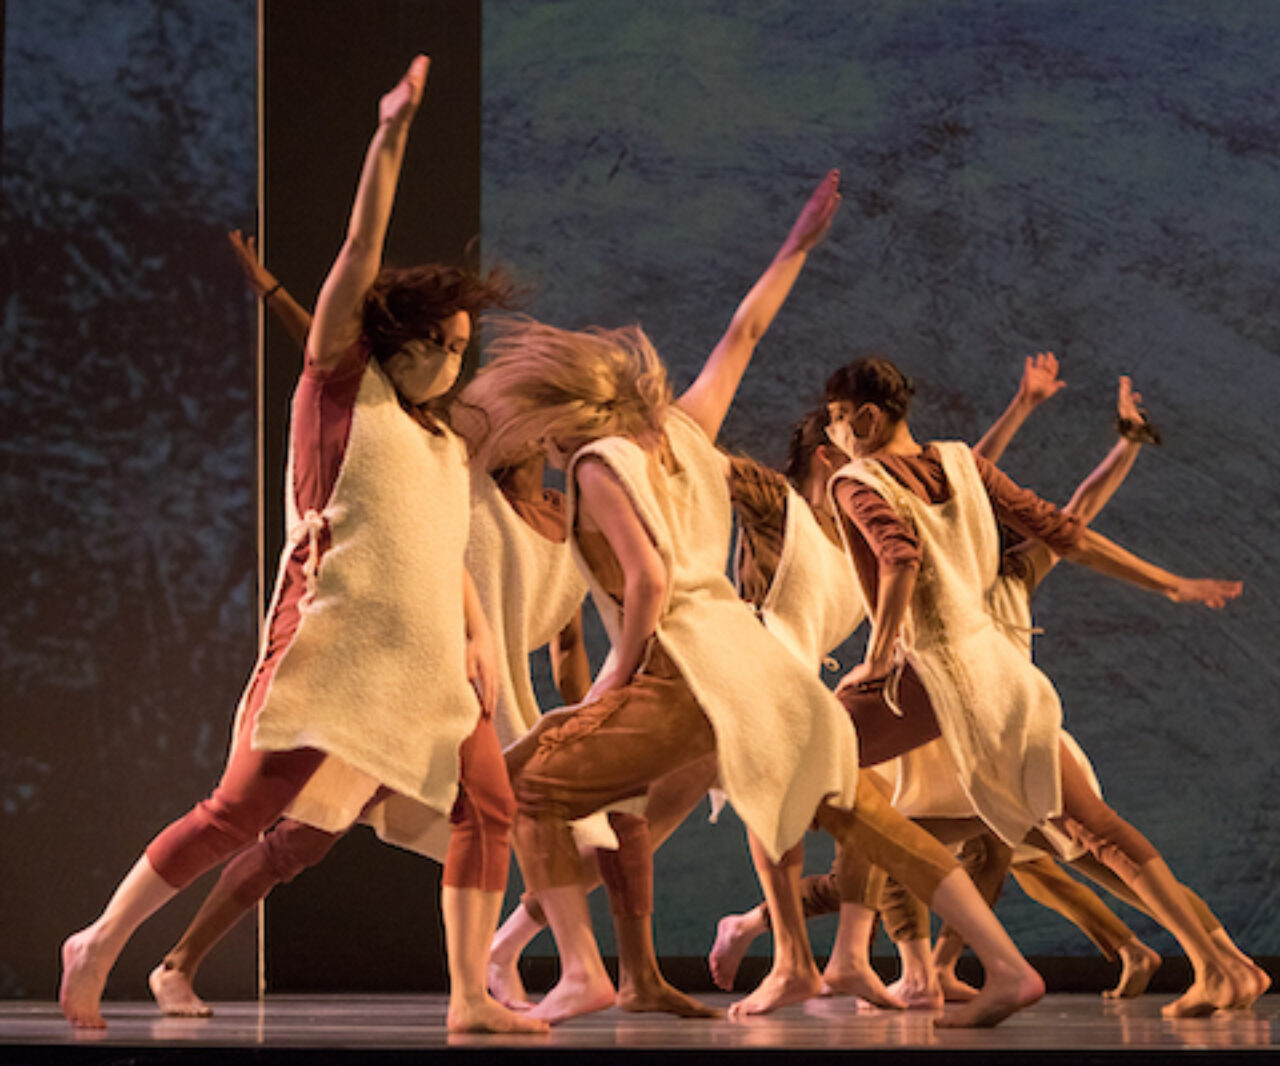 Dancers run thru each other with arms outstretched